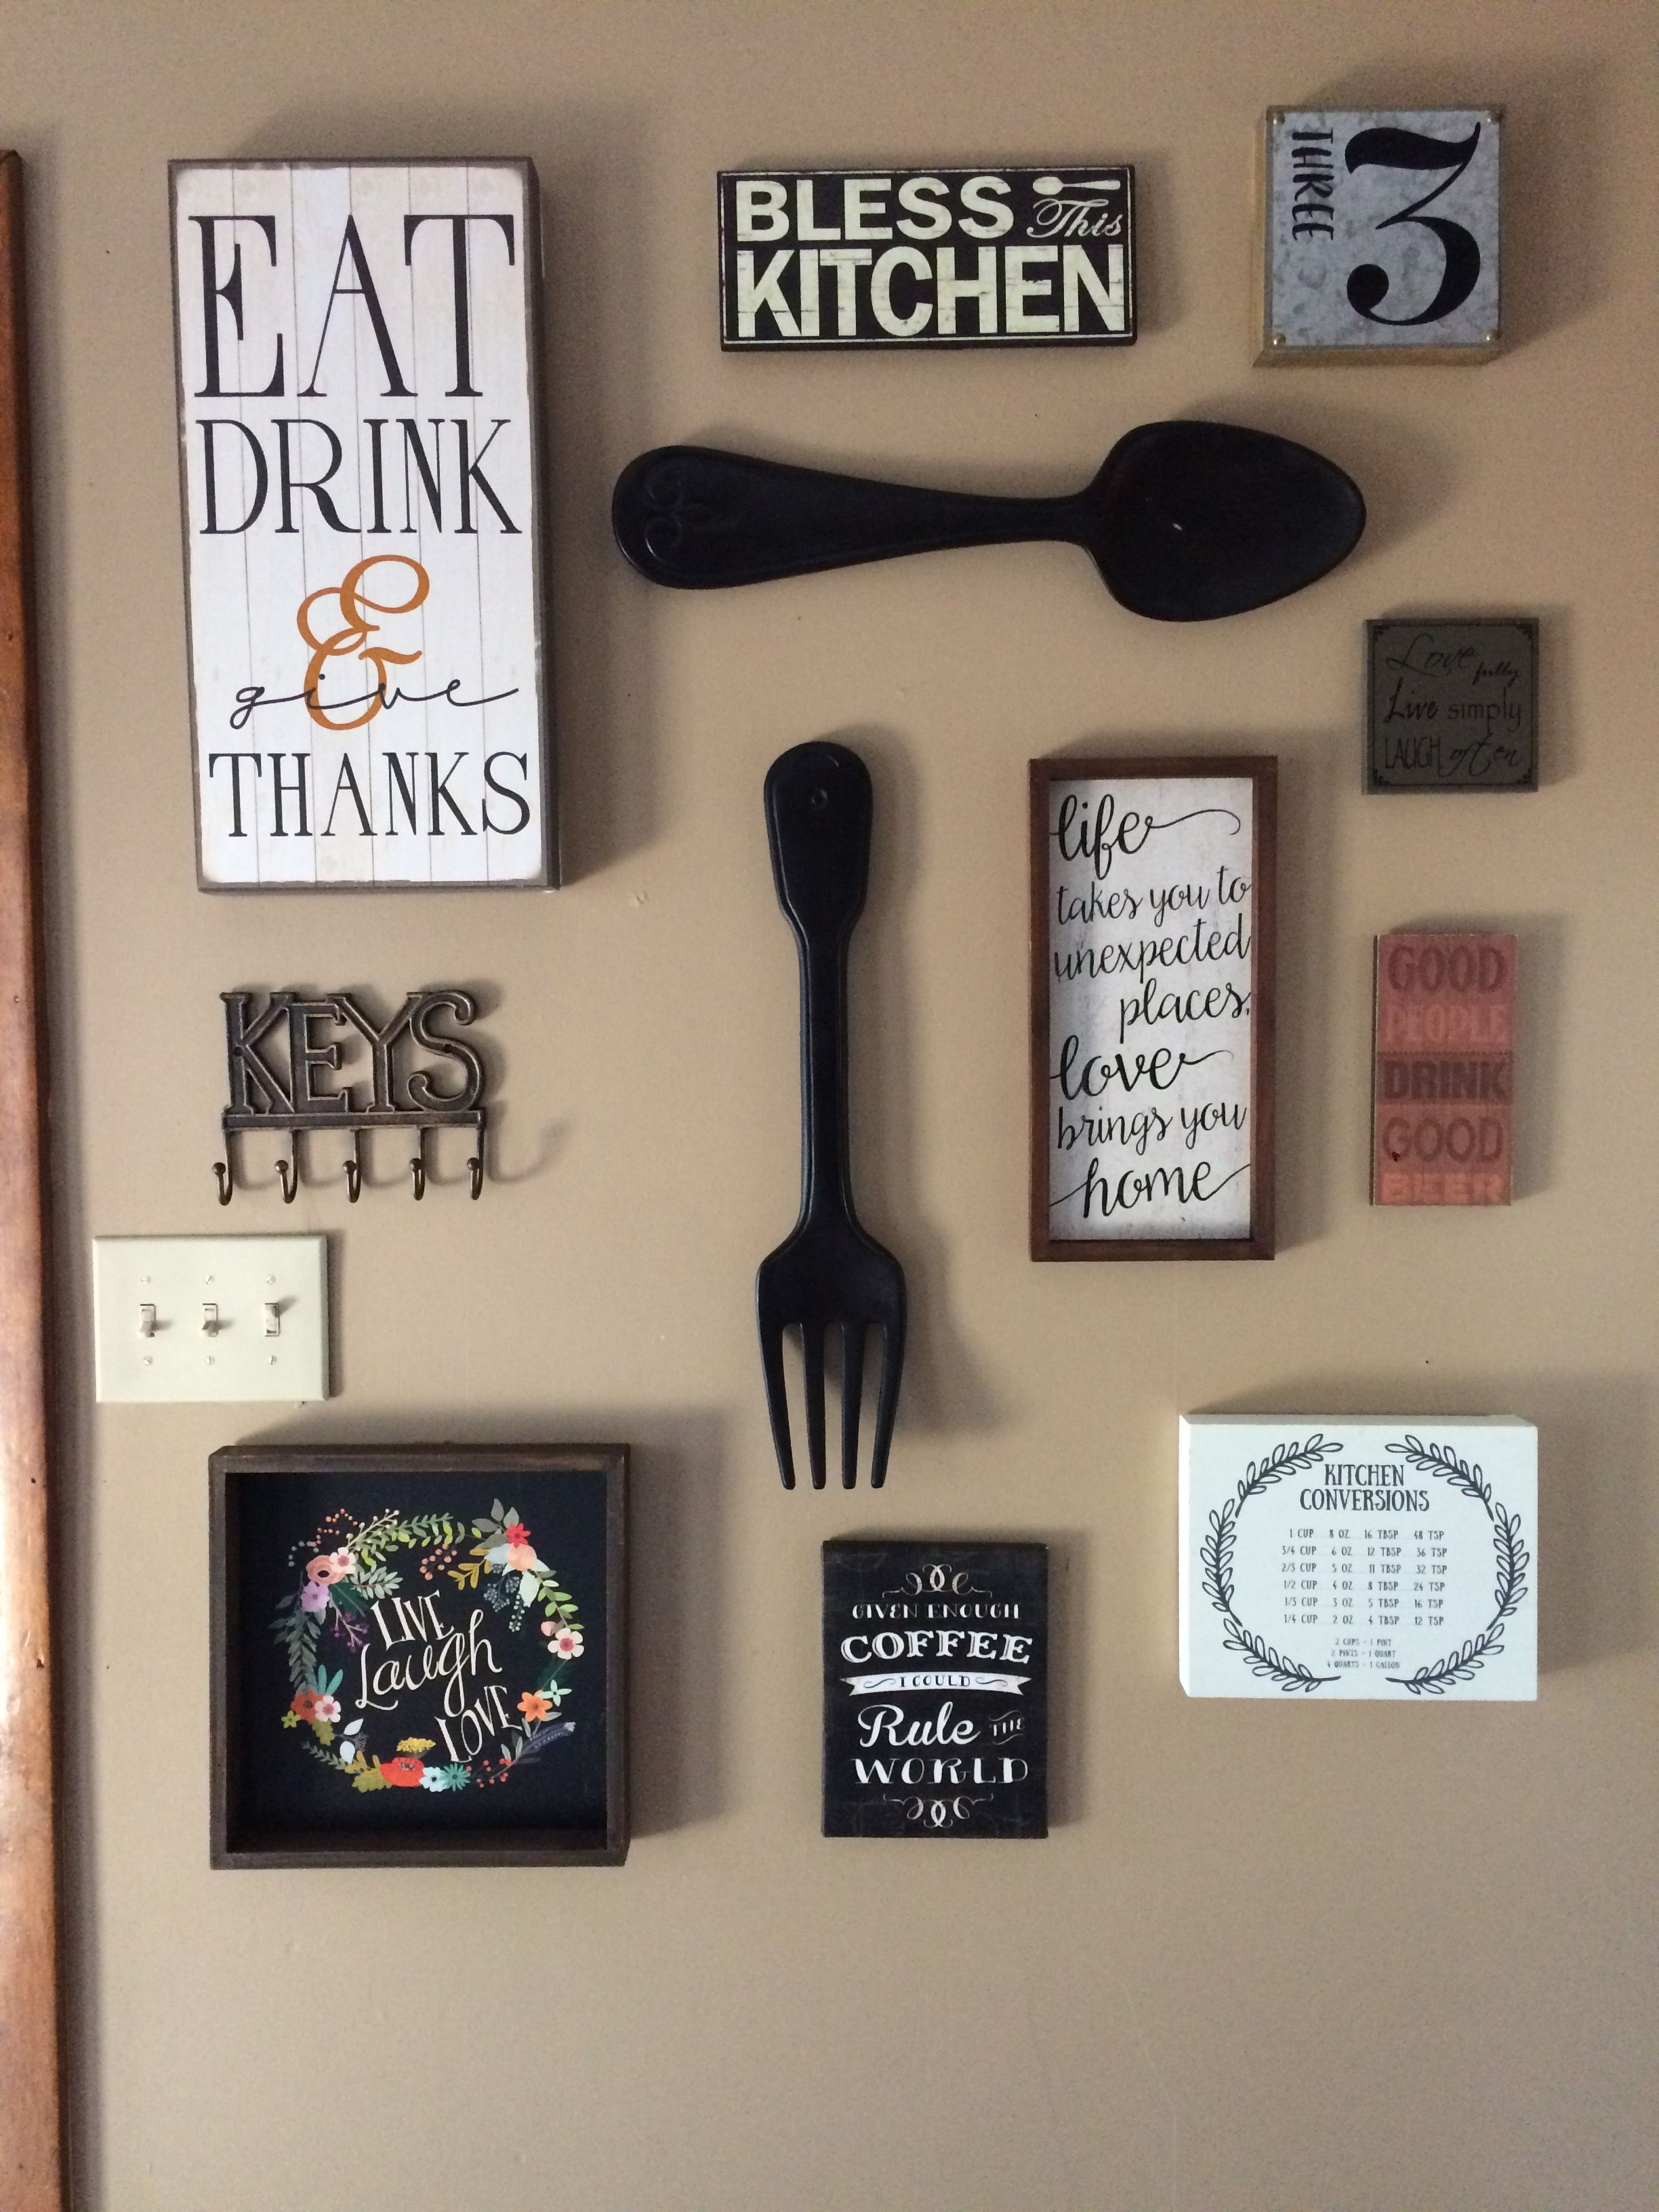 My Kitchen Gallery Wall All Decor From Hobby Lobby And Ross Completed The Project In 1 Hour It Turned Out Amazing Apartment Themes